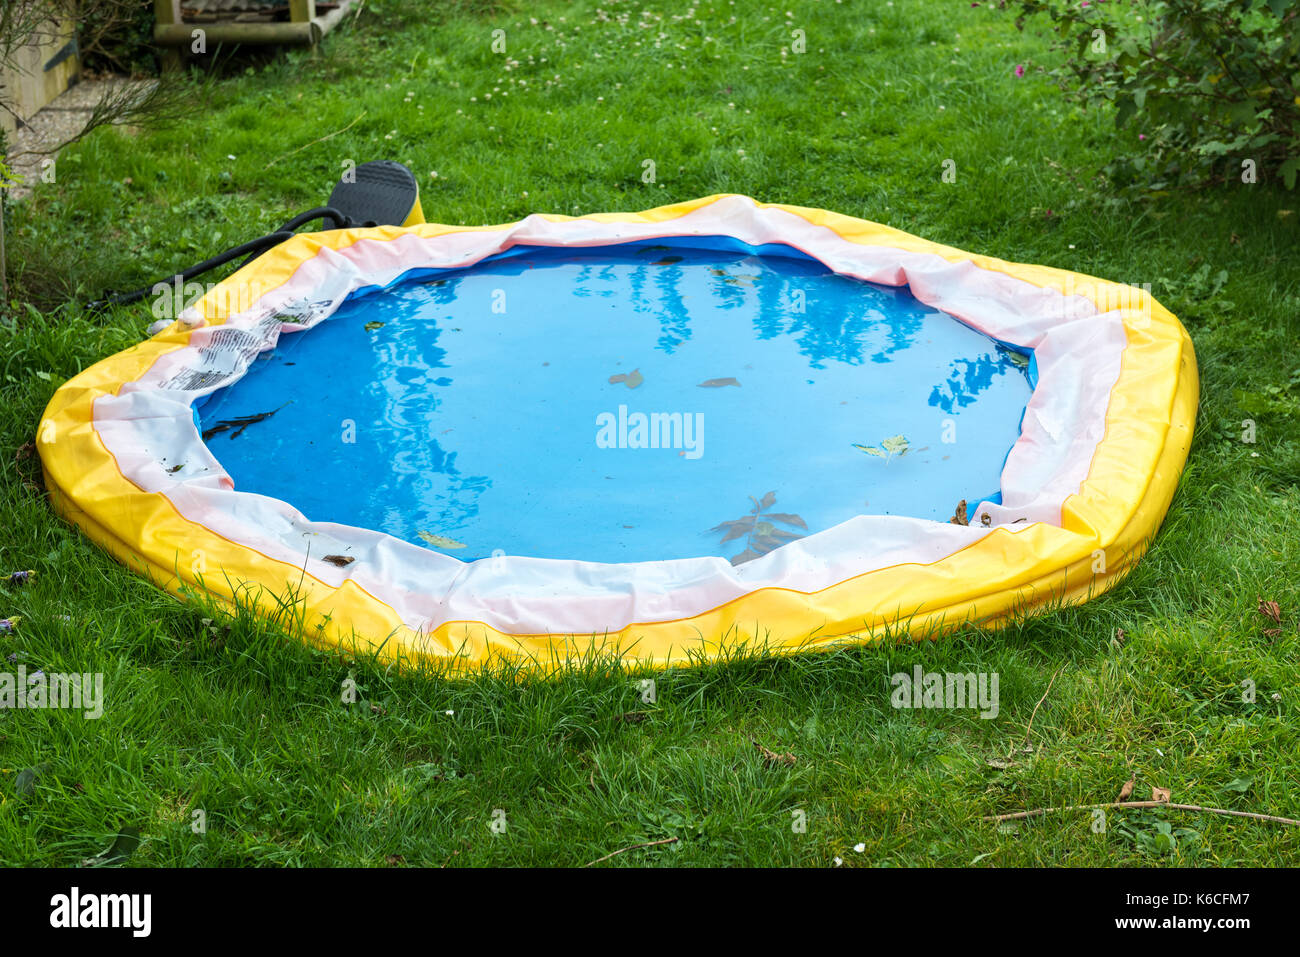 Little Swimming Pool Deflated At The End Of Summer   Stock Image